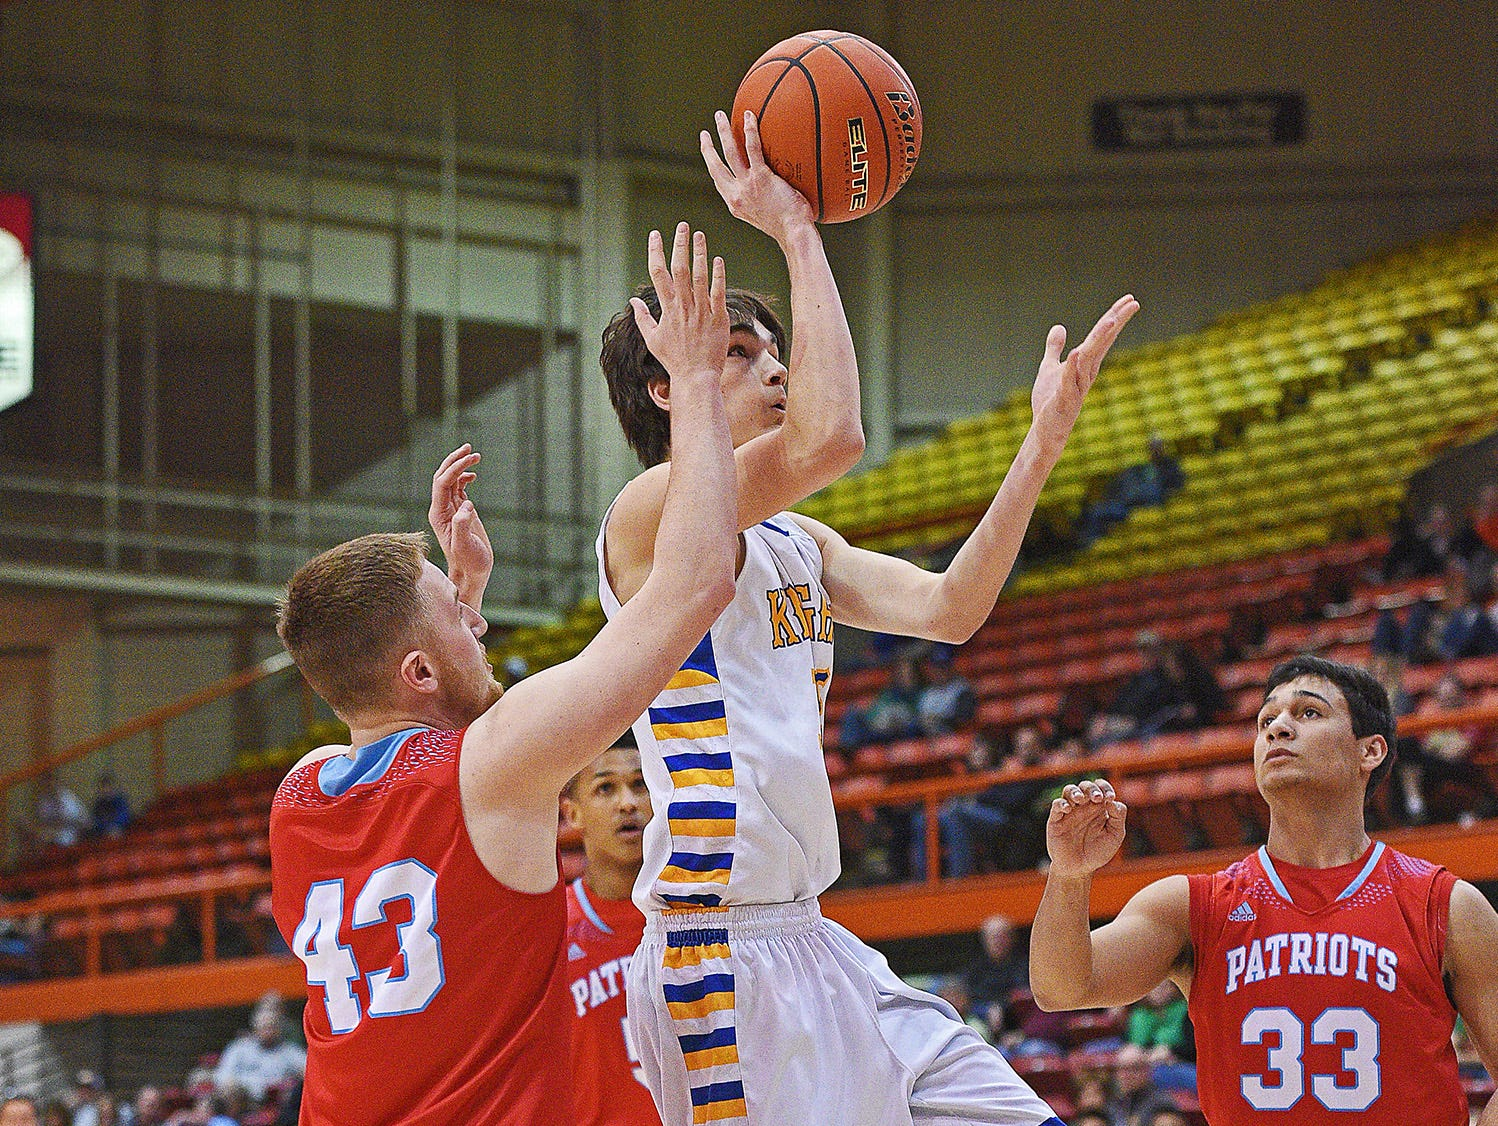 O'Gorman's Joey Messler (15) goes up for a shot over Lincoln's Andrew Tverberg (43) during a 2017 SDHSAA Class AA State Boys Basketball semifinal game Friday, March 17, 2017, at Rushmore Plaza Civic Center in Rapid City.